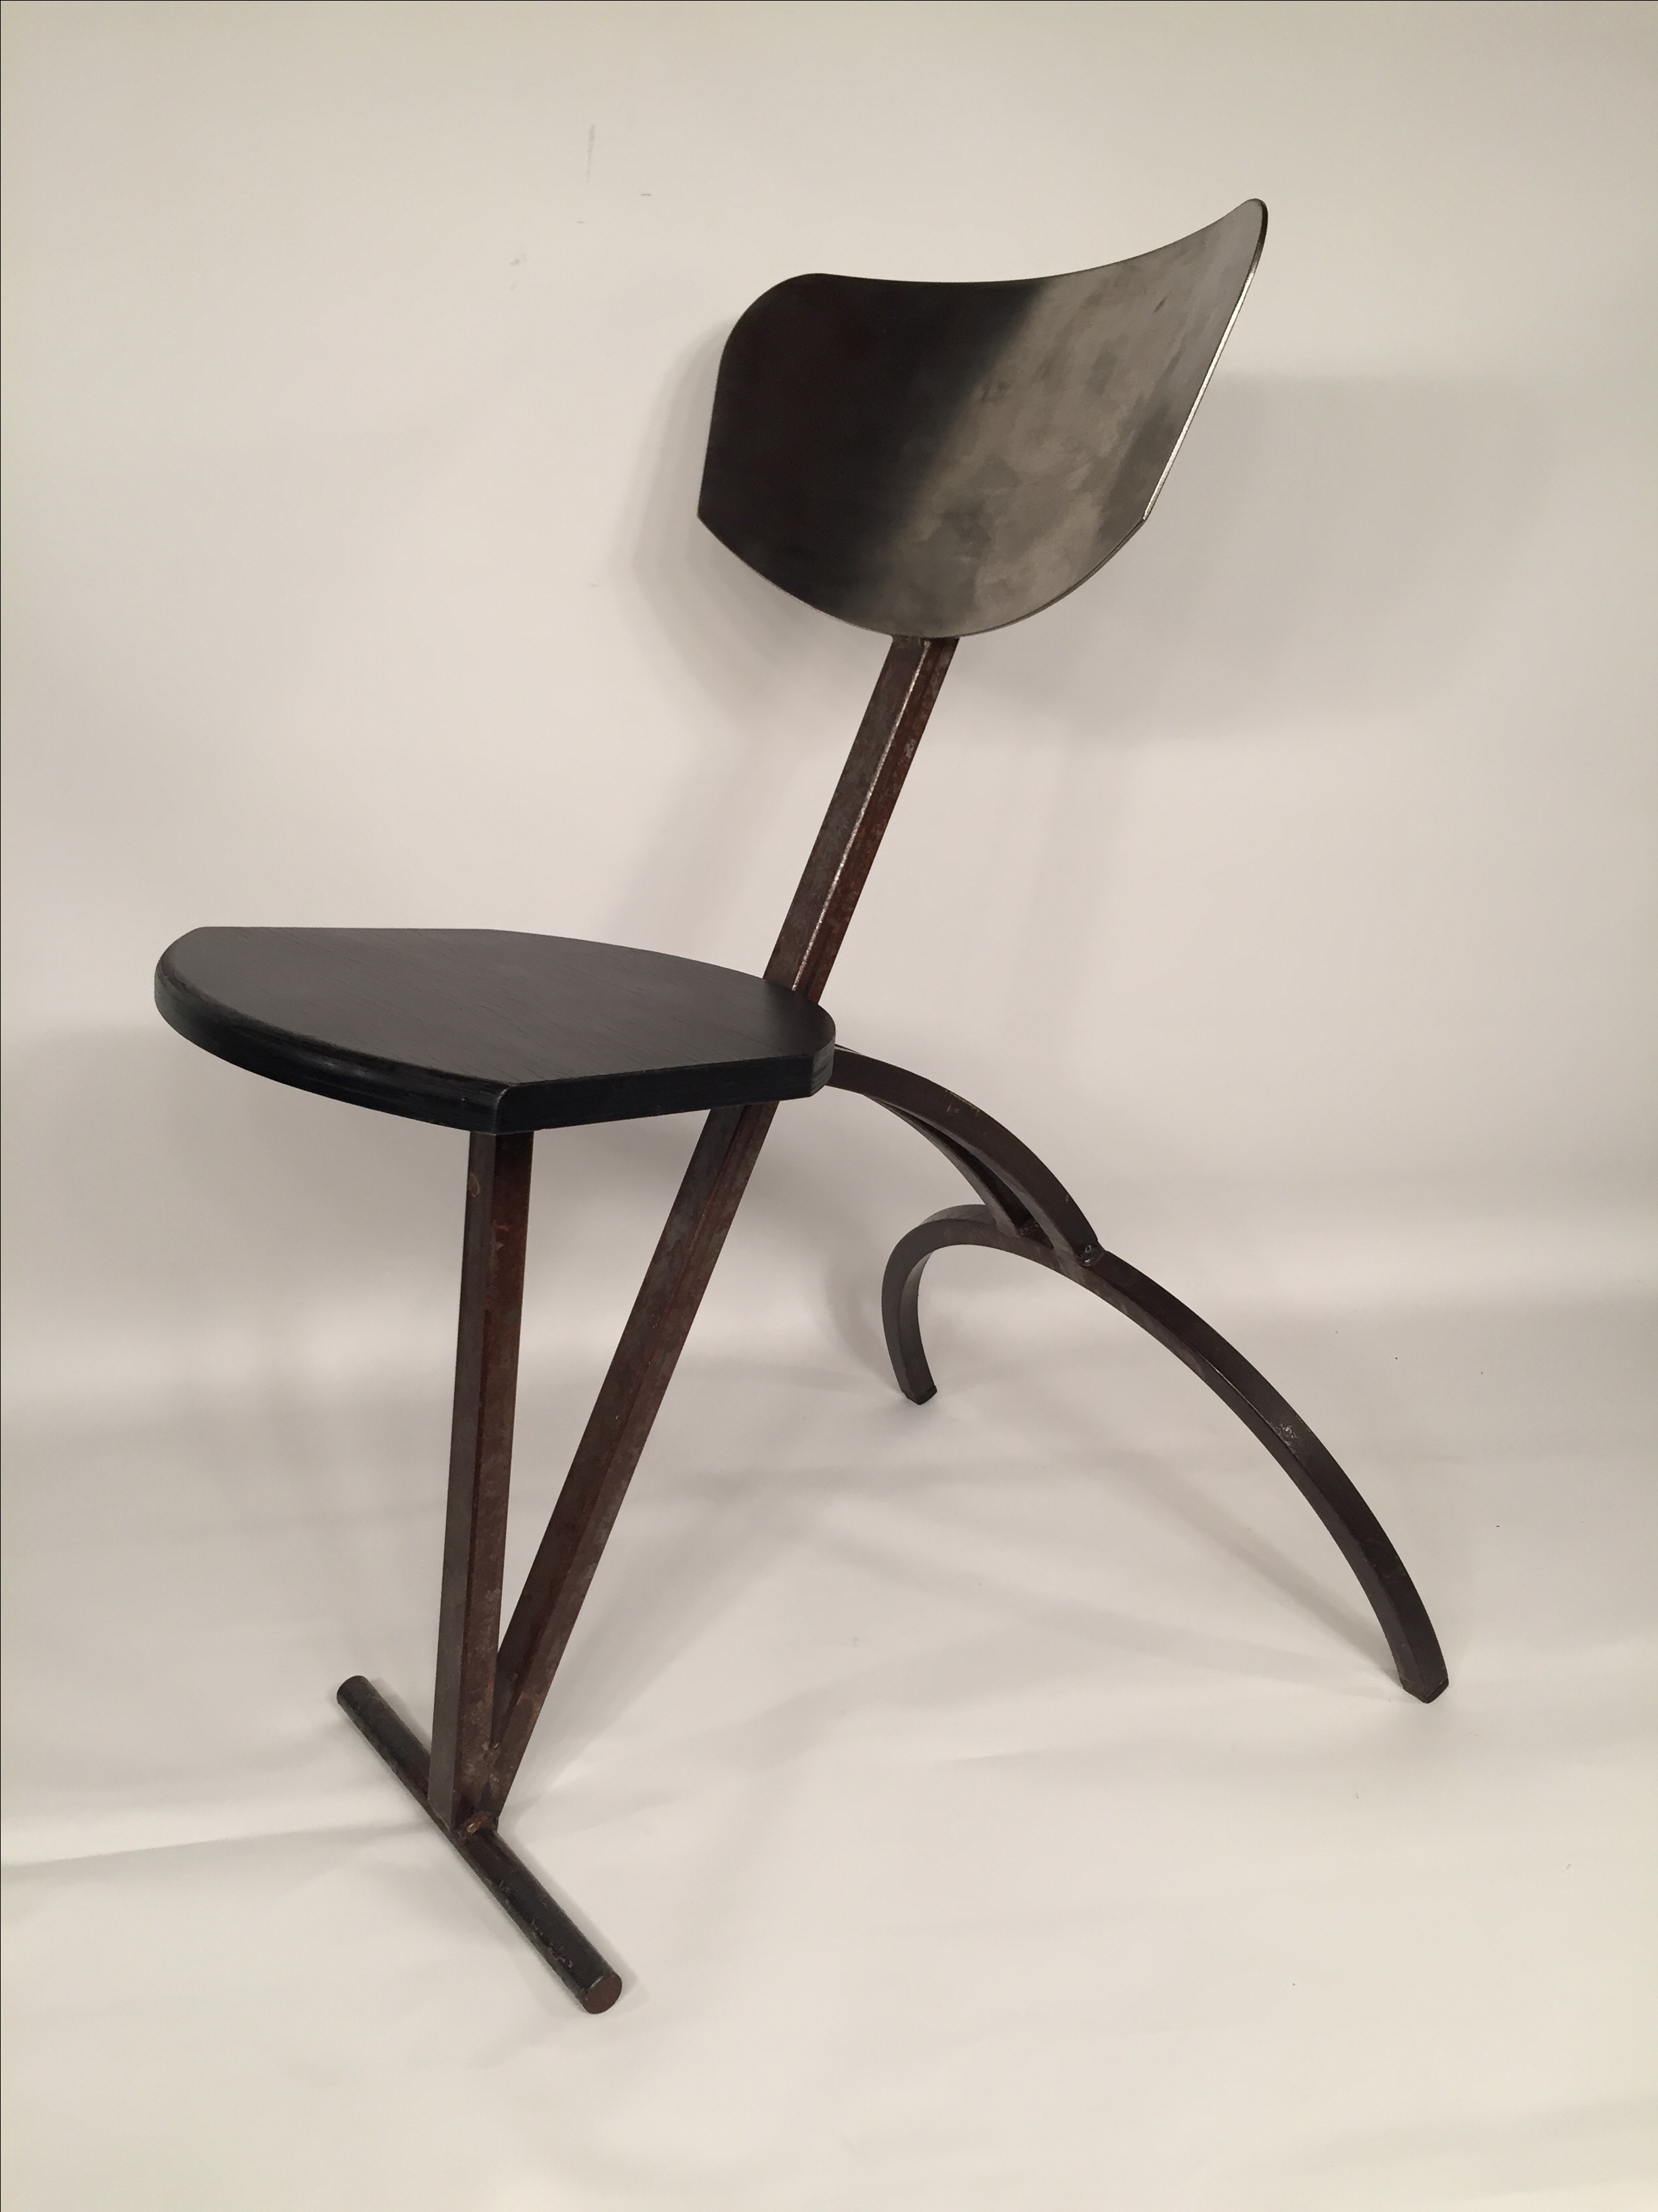 French French Handmade Industrial Modern Chairs   S/6 For Sale   Image 3 Of